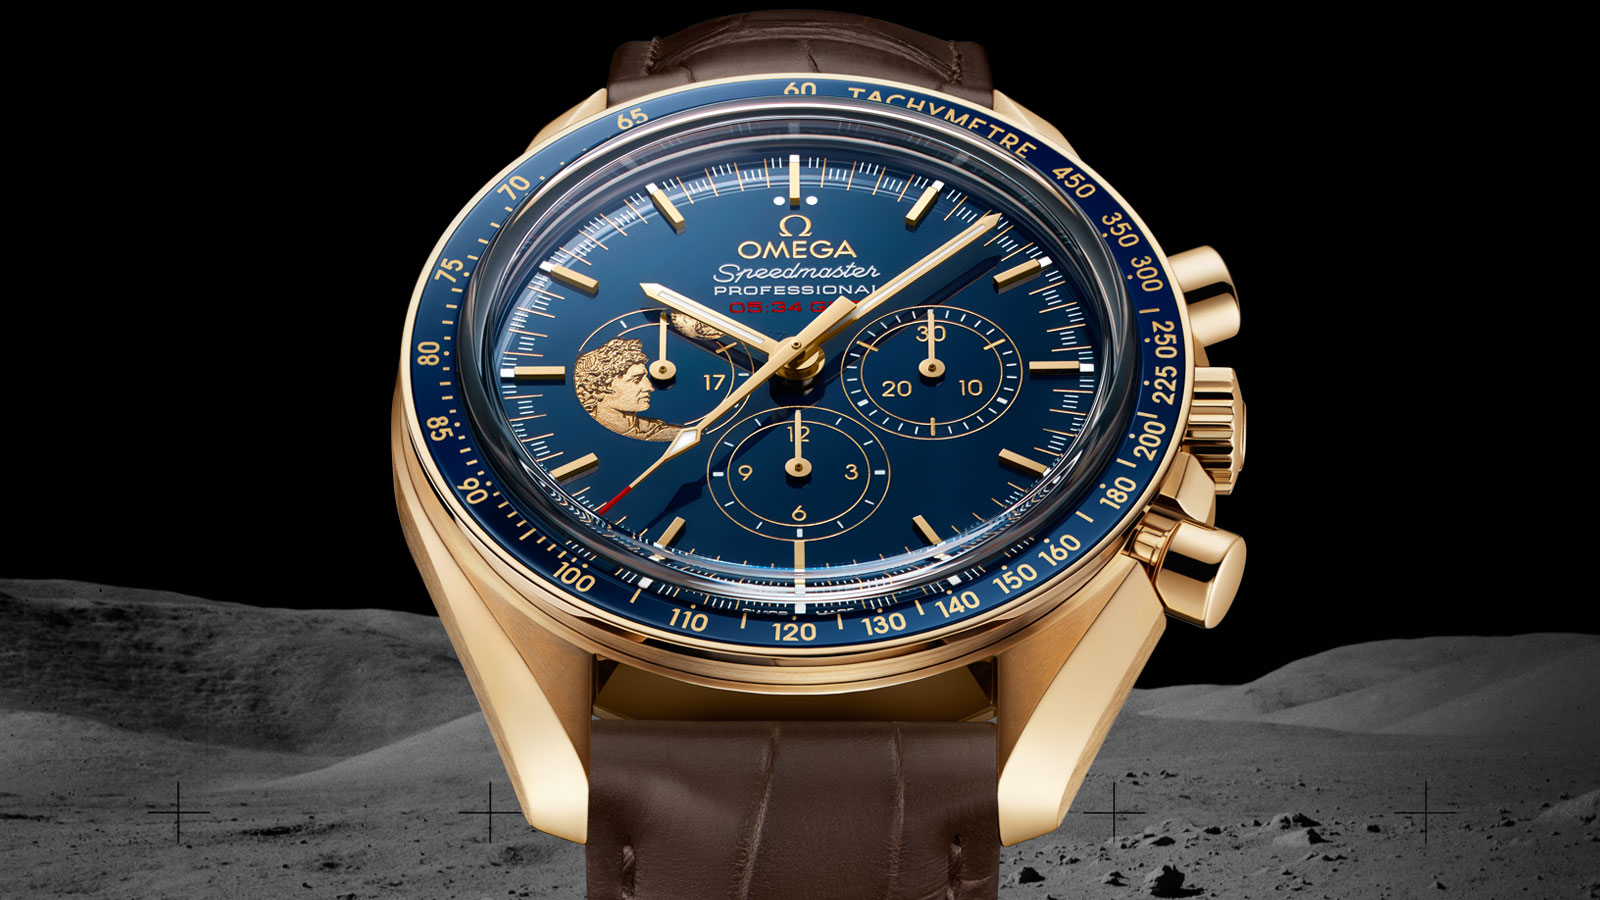 Speedmaster Moonwatch Moonwatch Series Limitadas Aniversario Reloj - 311.63.42.30.03.001